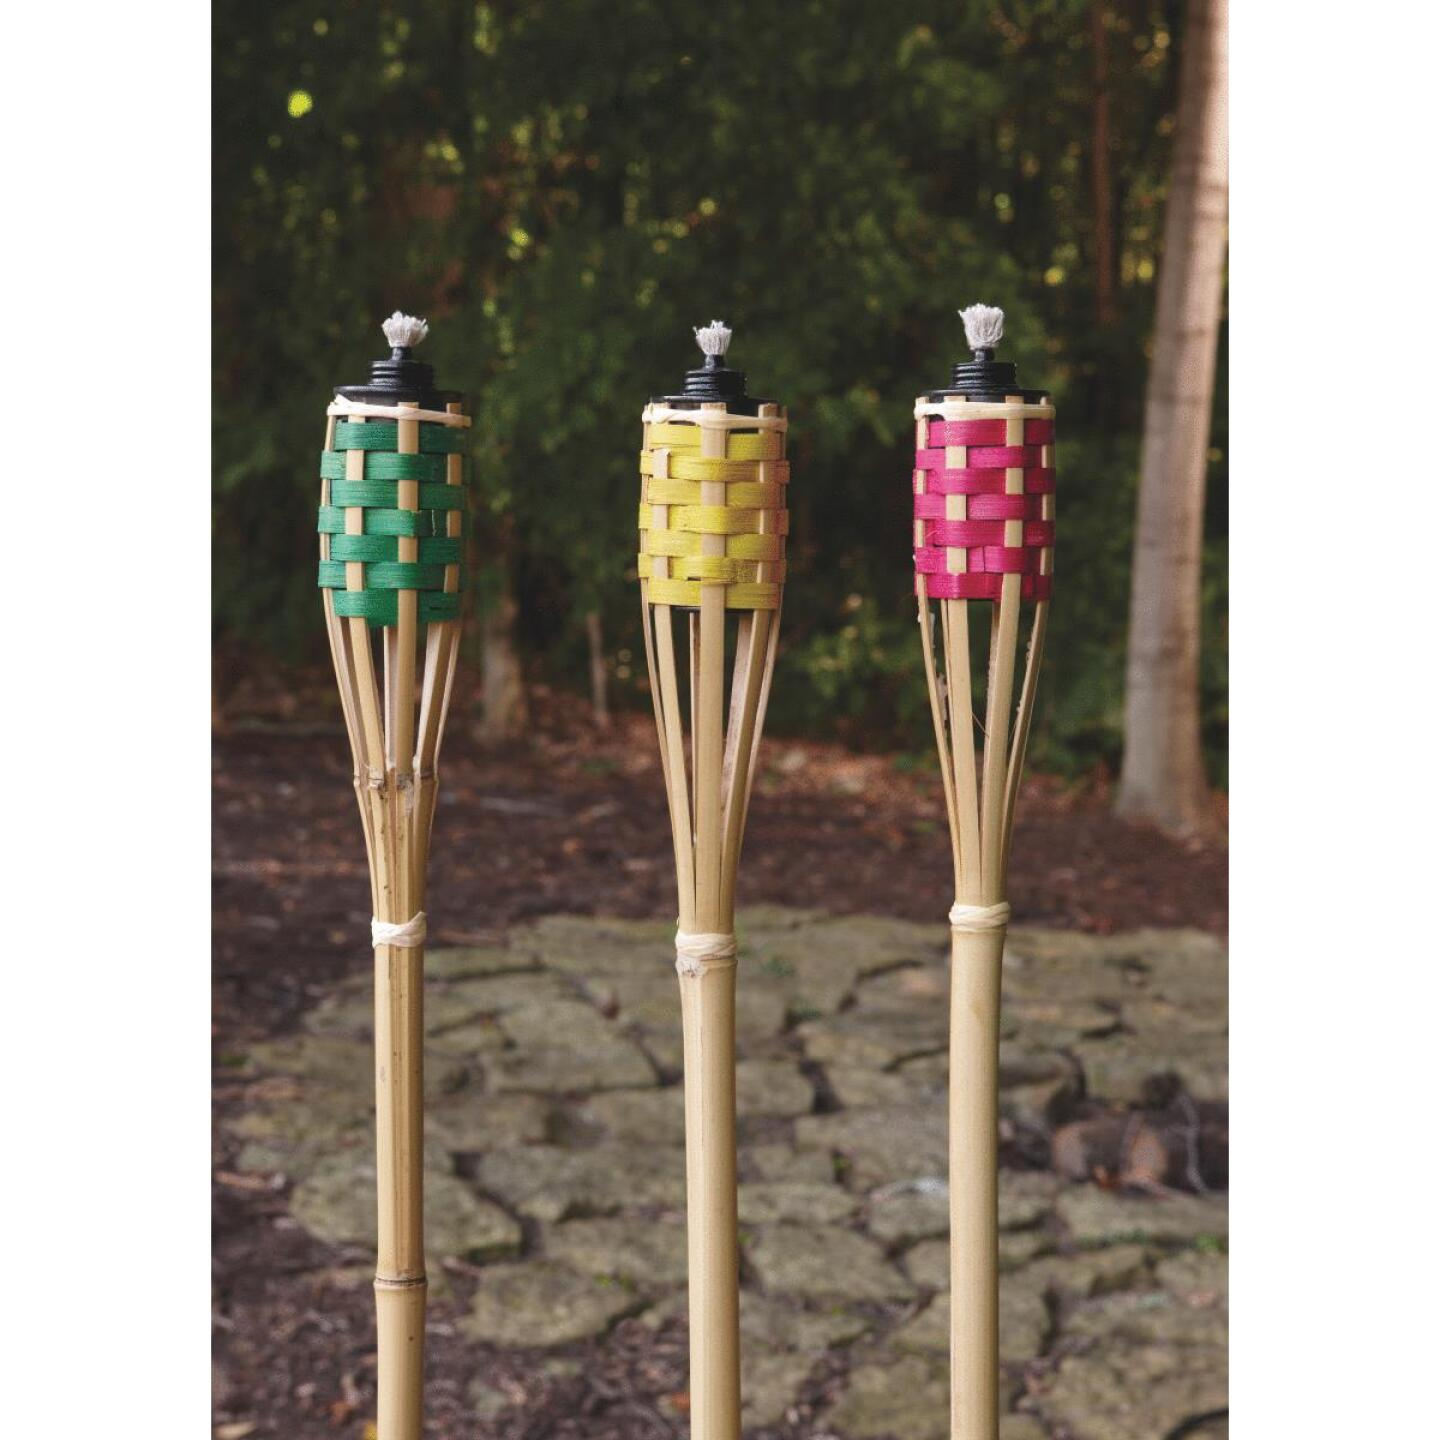 Outdoor Expressions 4 Ft. Assorted Color Bamboo Party Patio Torch Image 7